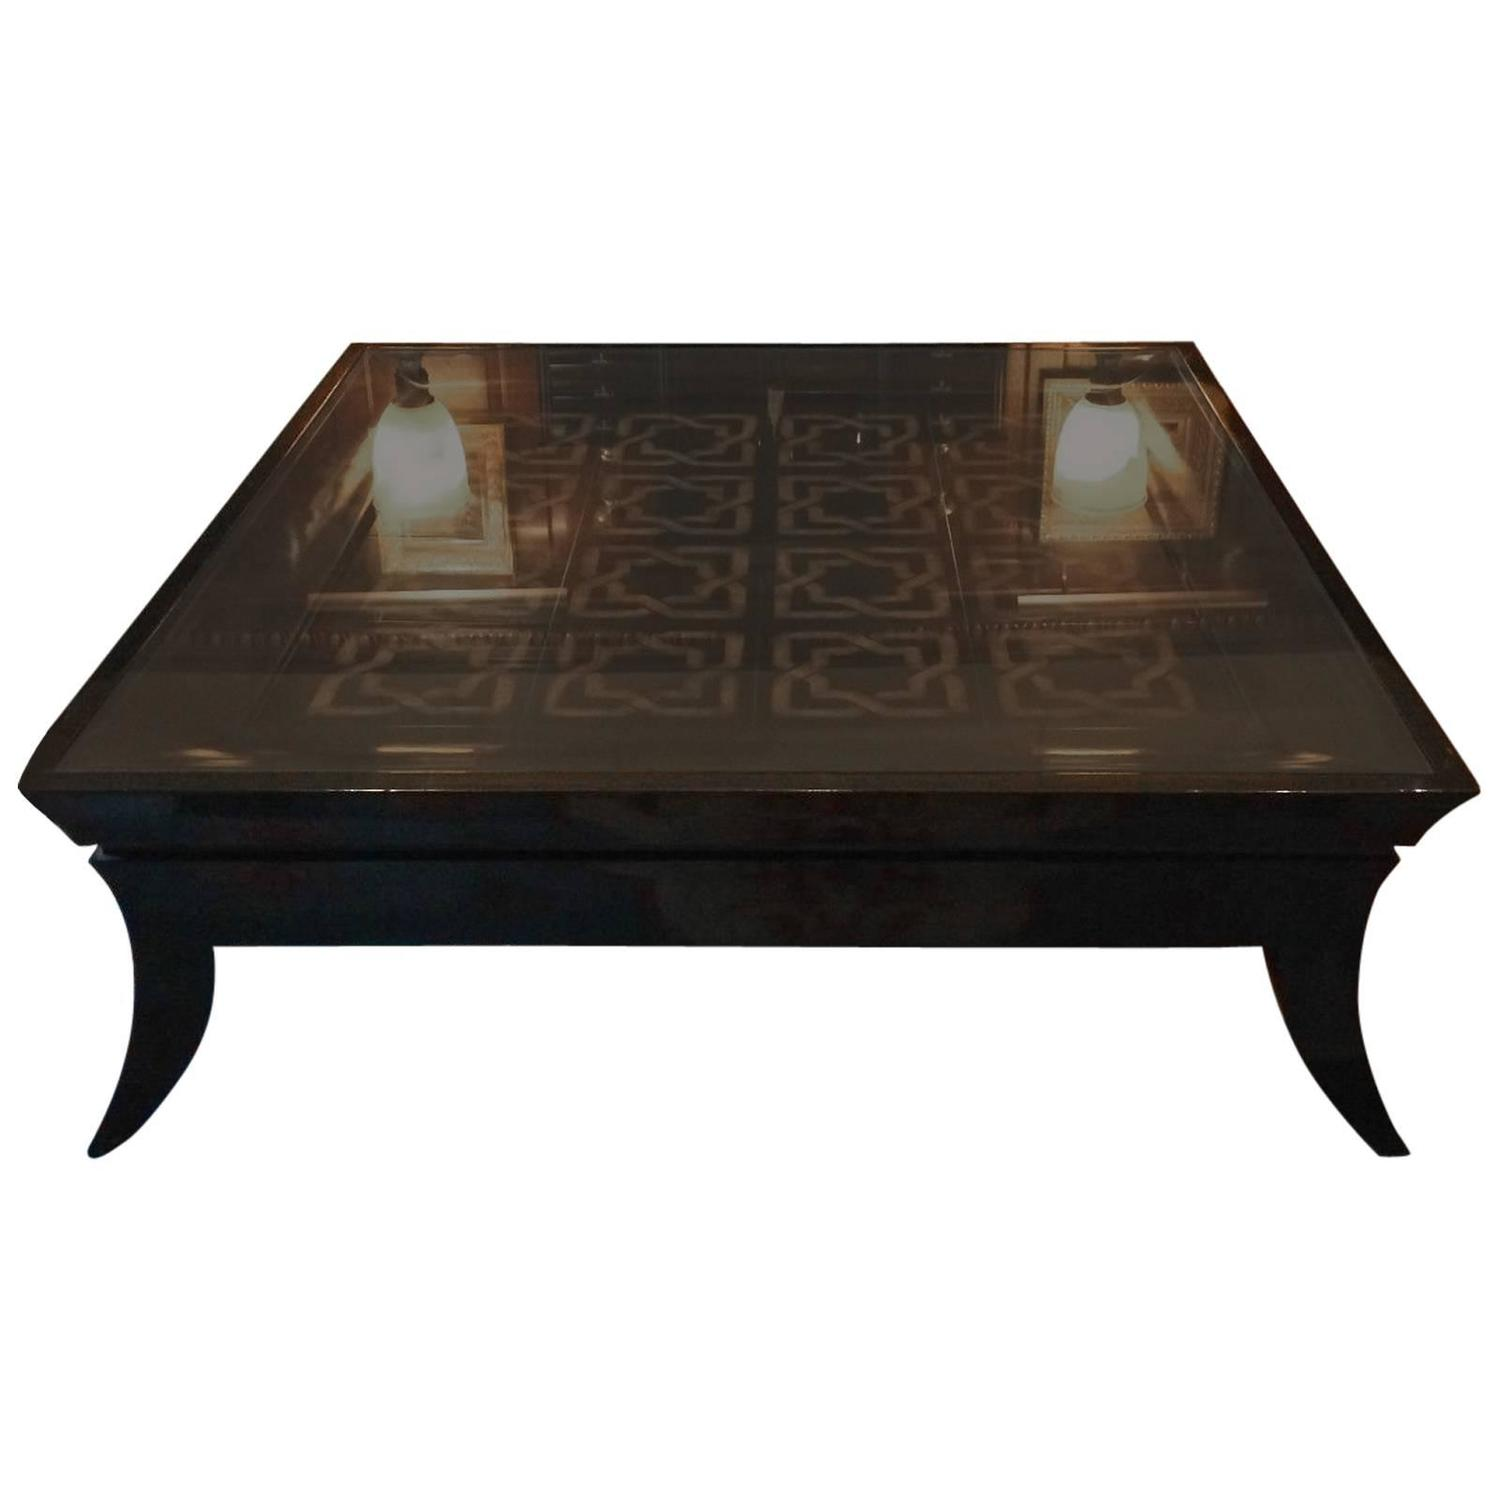 Large coffee table glass topped tiled modern at 1stdibs Glass contemporary coffee table